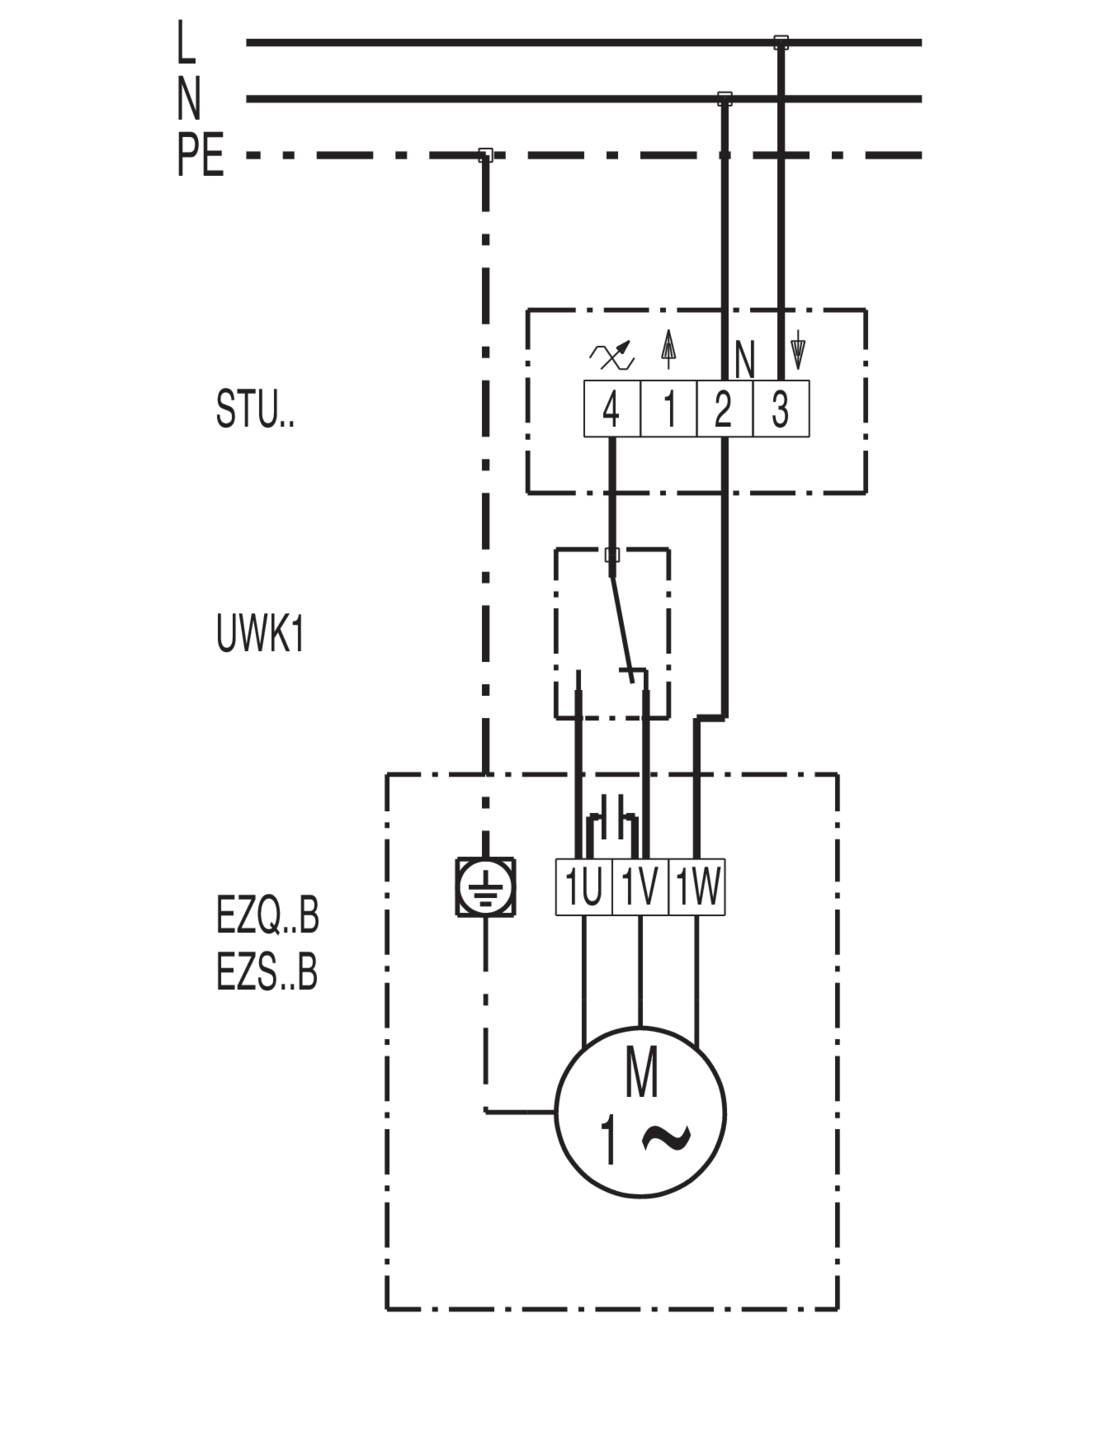 Ventilation Solutions For Residential And Industrial Use Bep Wiring Diagram Ezs 35 4 B